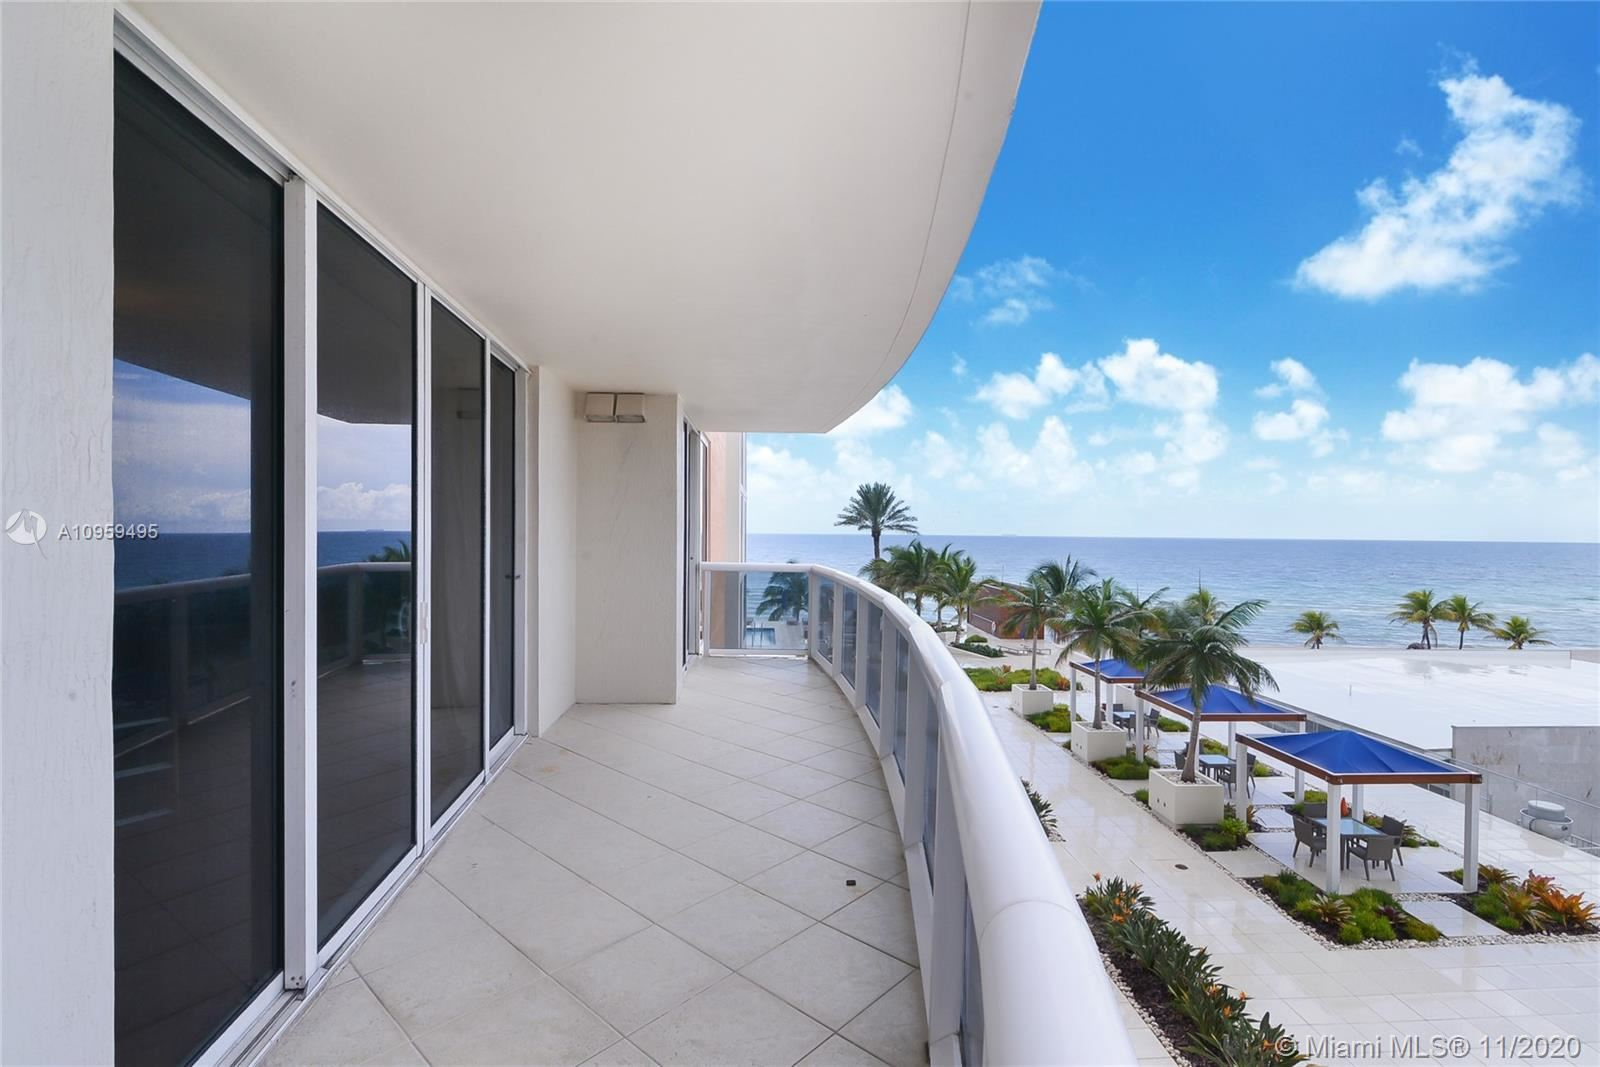 18911 Collins Ave #603, Sunny Isles, FL 33160 - #: A10959495